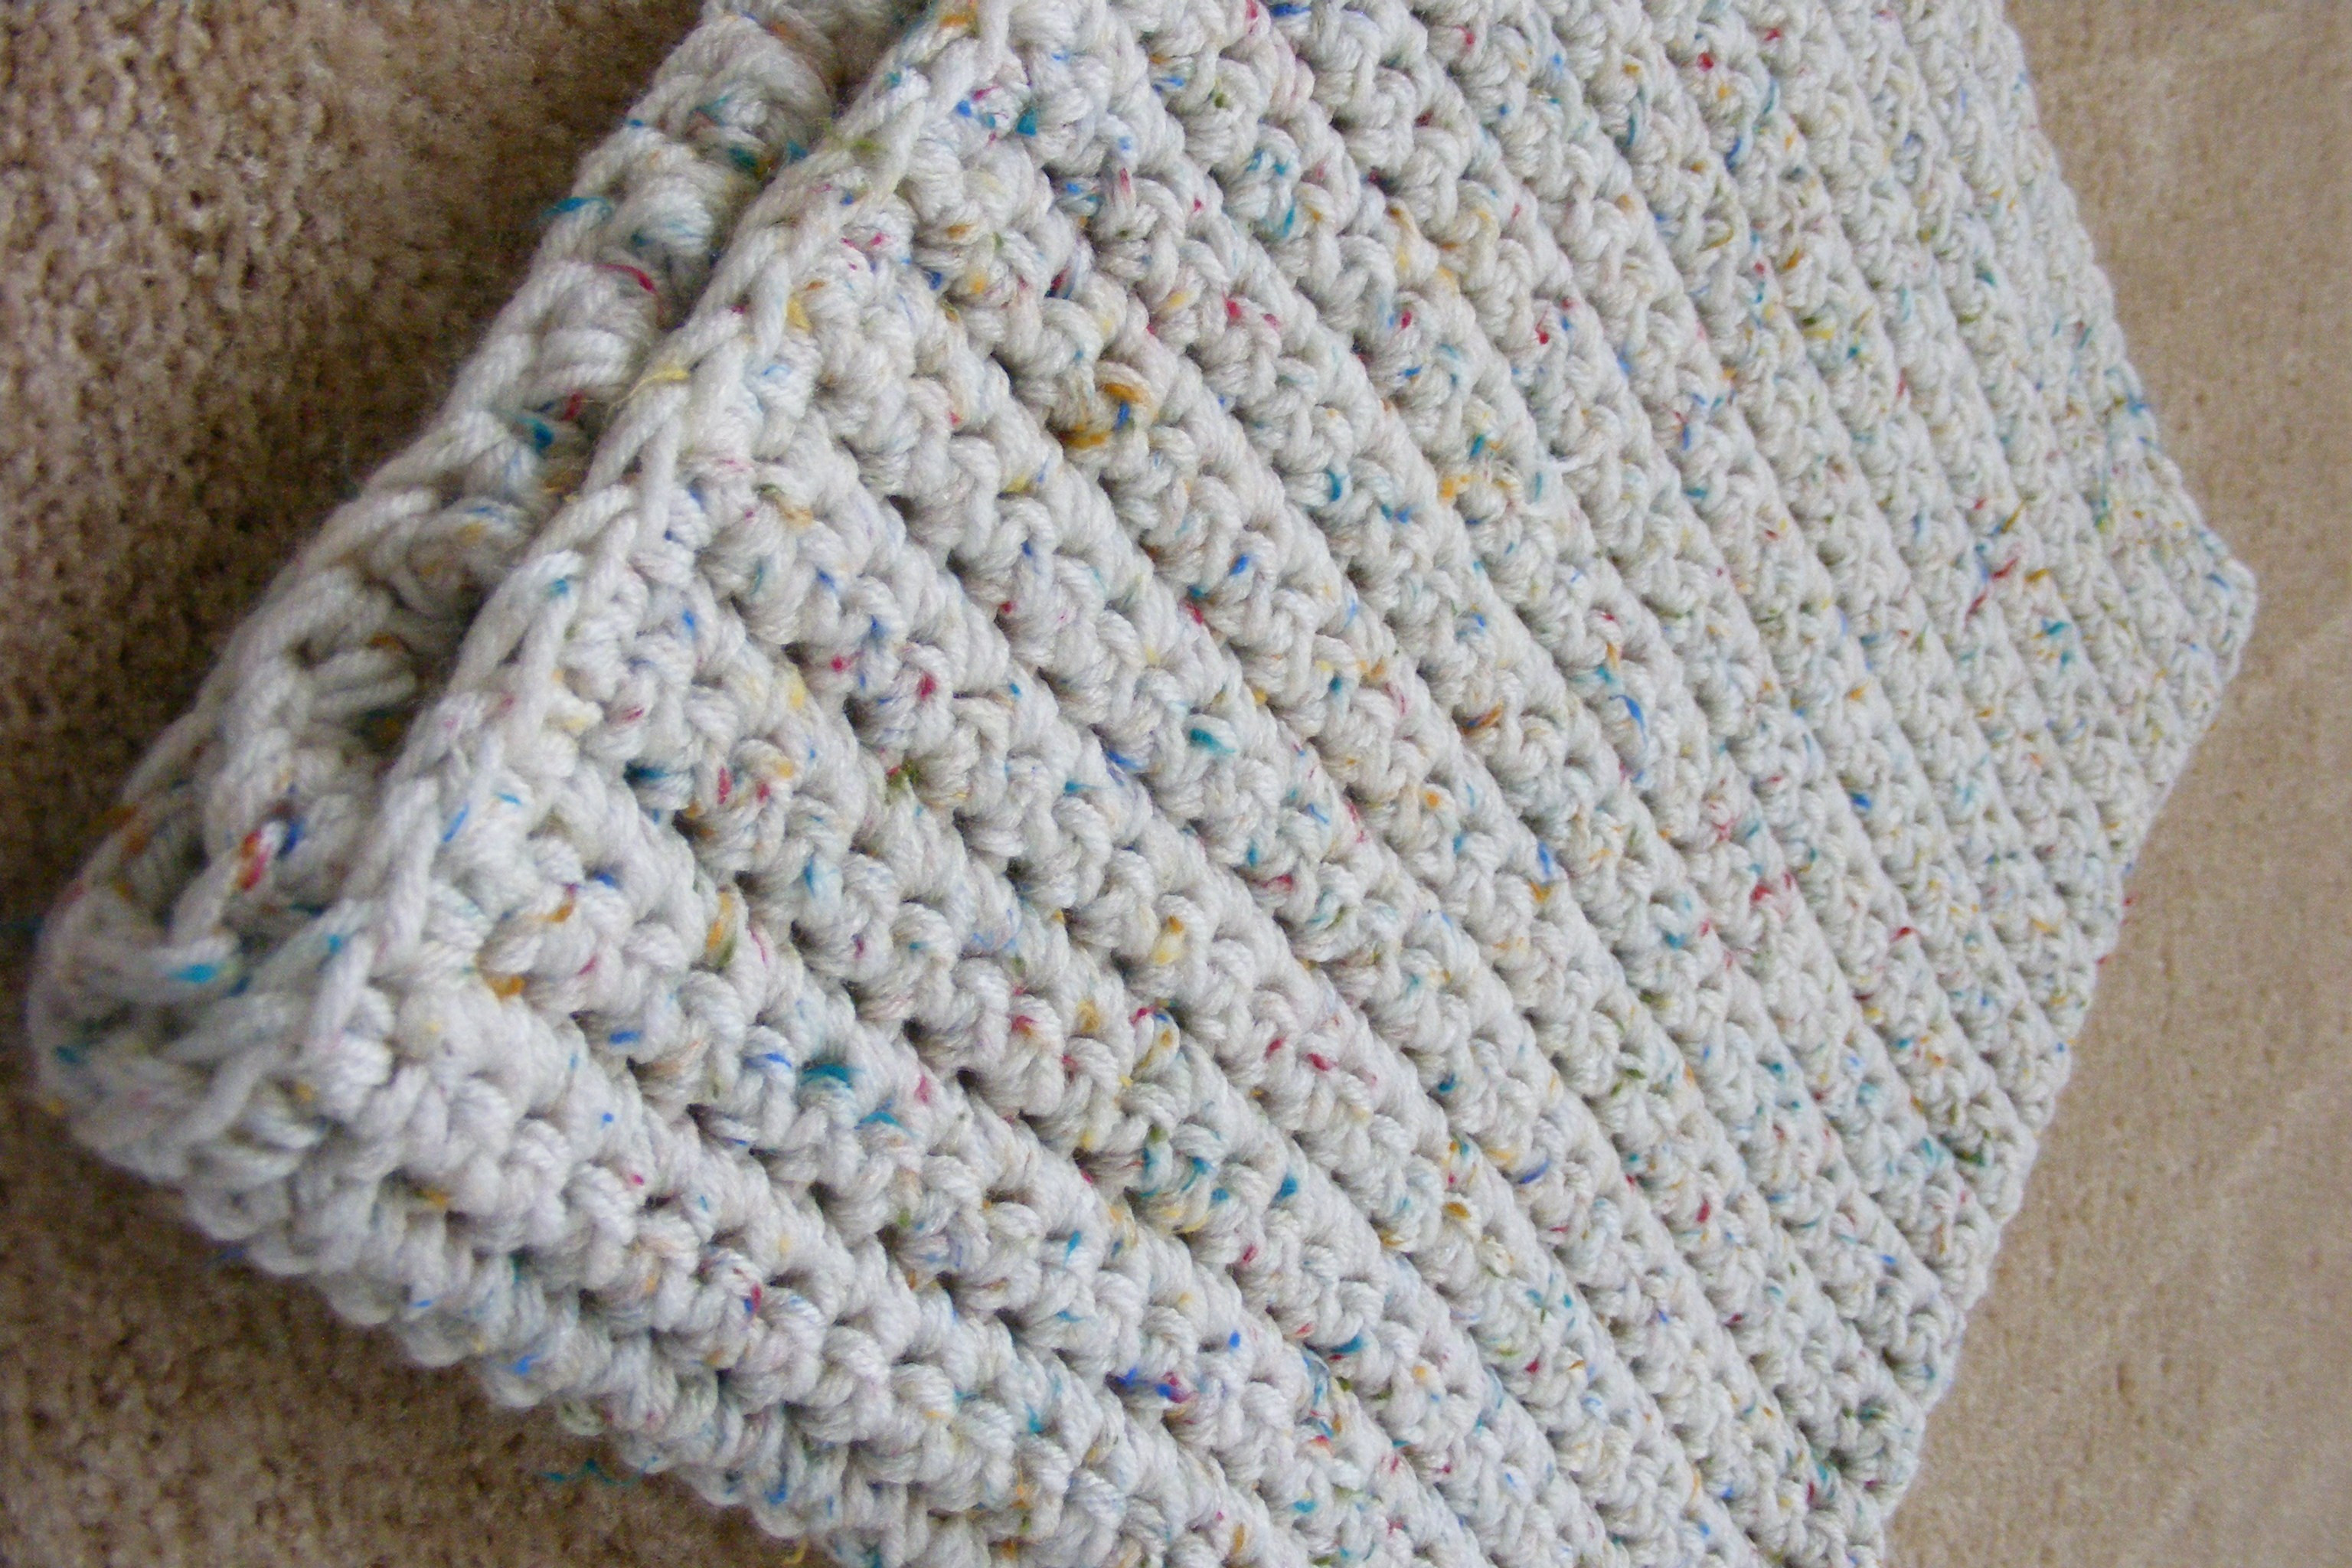 Crochet Baby Blanket Patterns for Beginners Inspirational Easy Knitting Patterns for Baby Blankets for Beginners Of Innovative 45 Pics Crochet Baby Blanket Patterns for Beginners